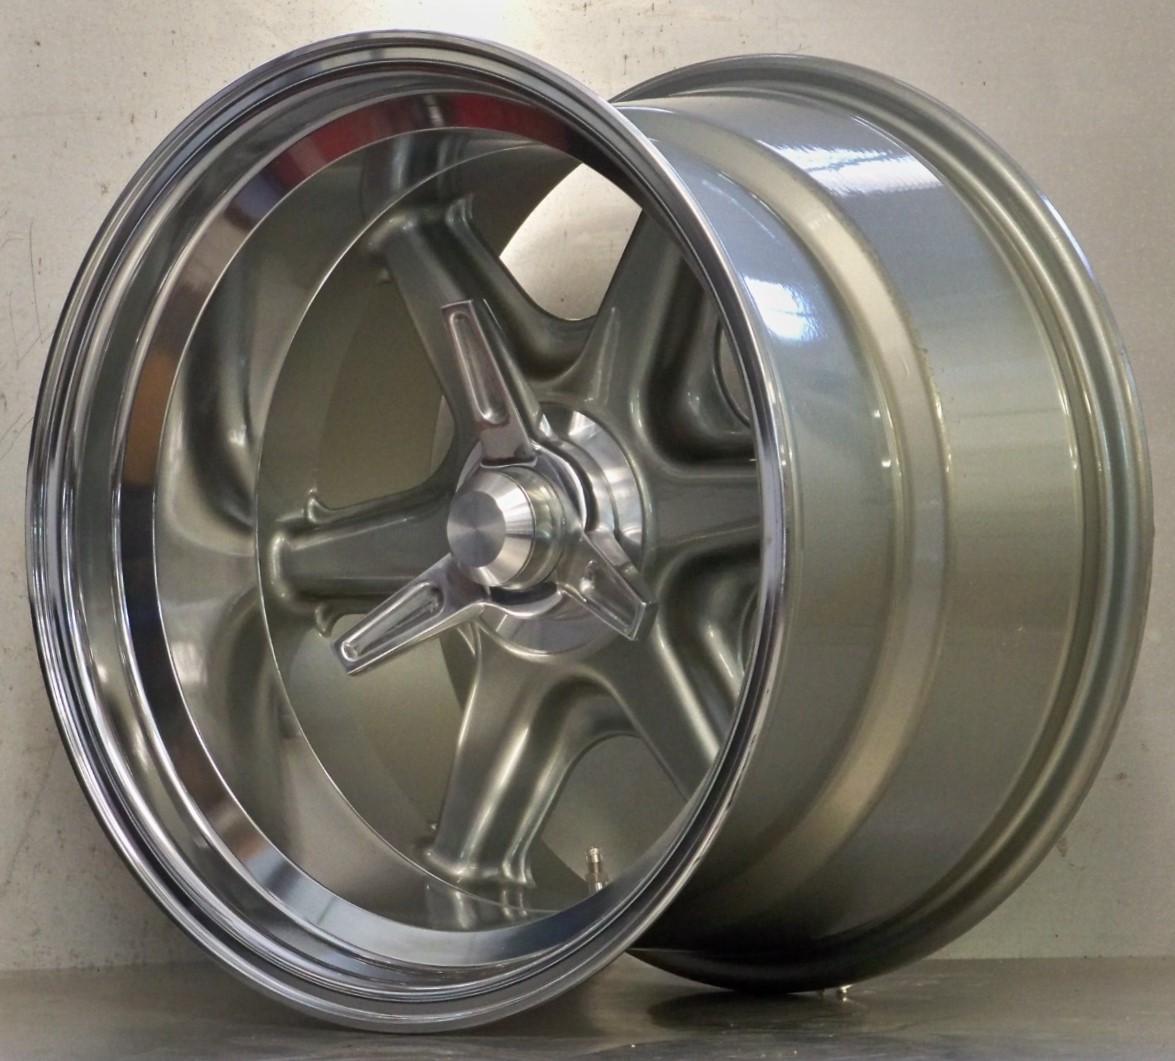 .BR 17 x 8 , 17 x 10.5 wheels adapter spinner kit